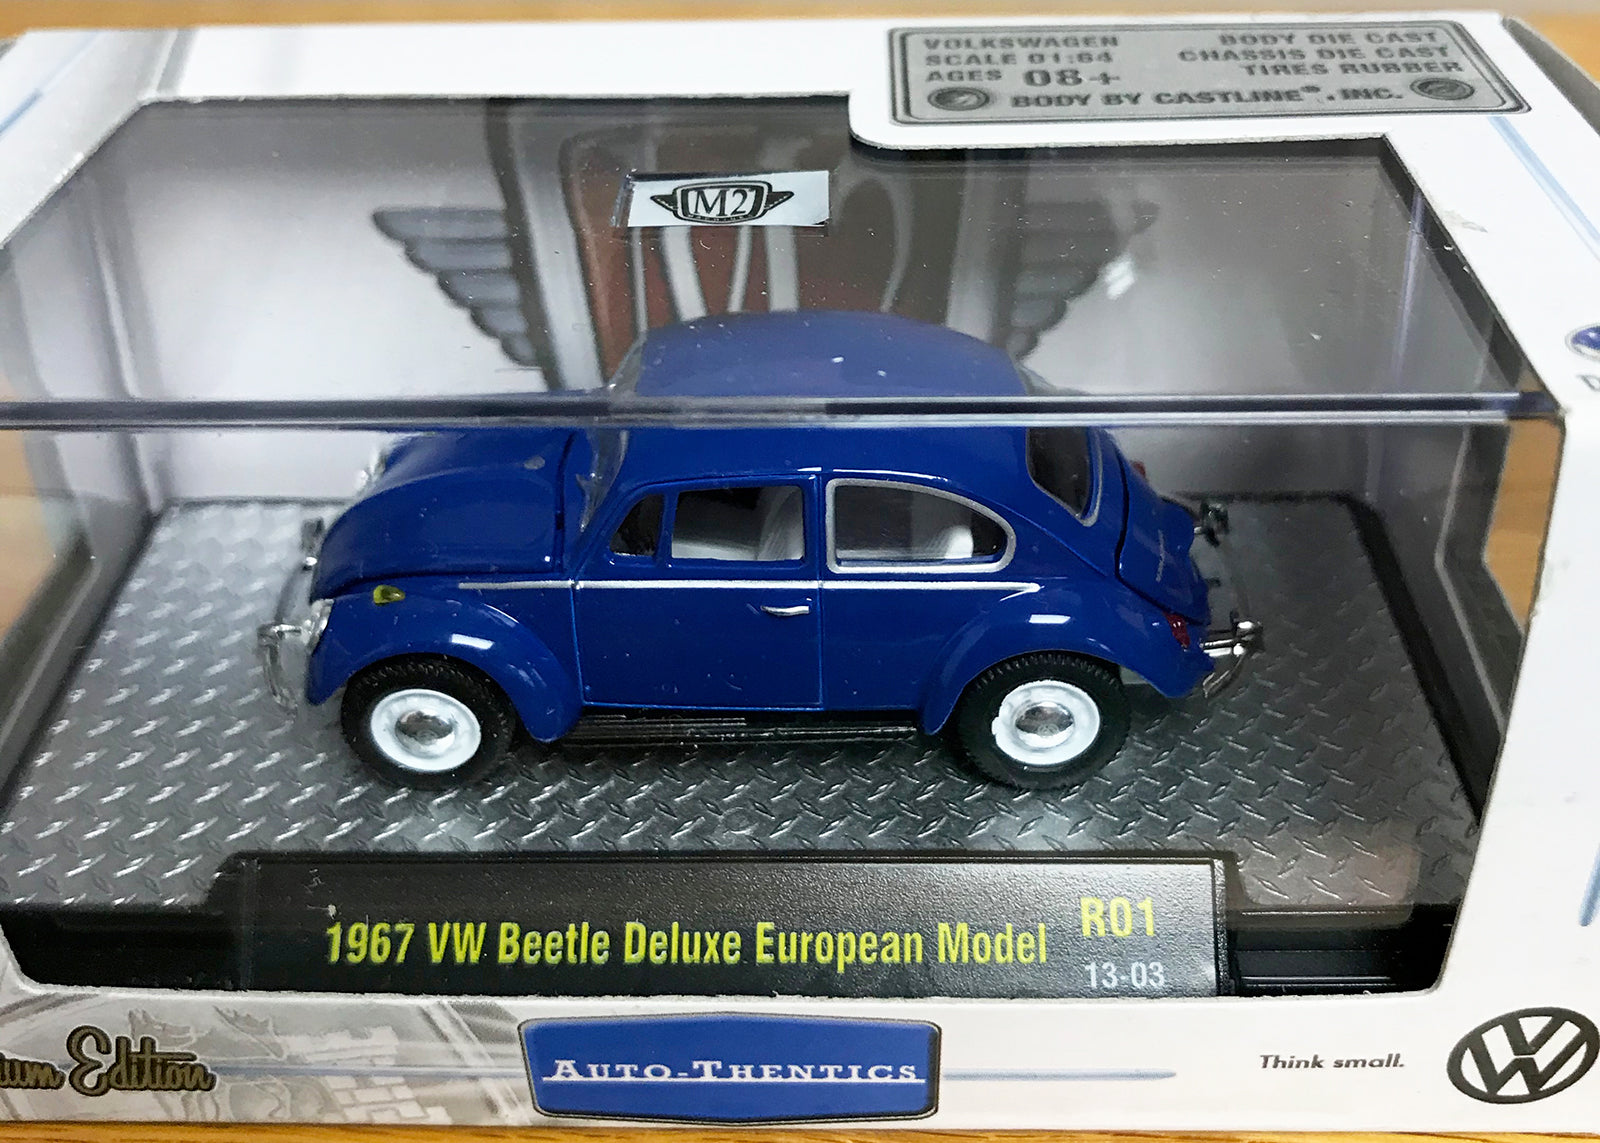 S 1967 VW Beetle - Blue